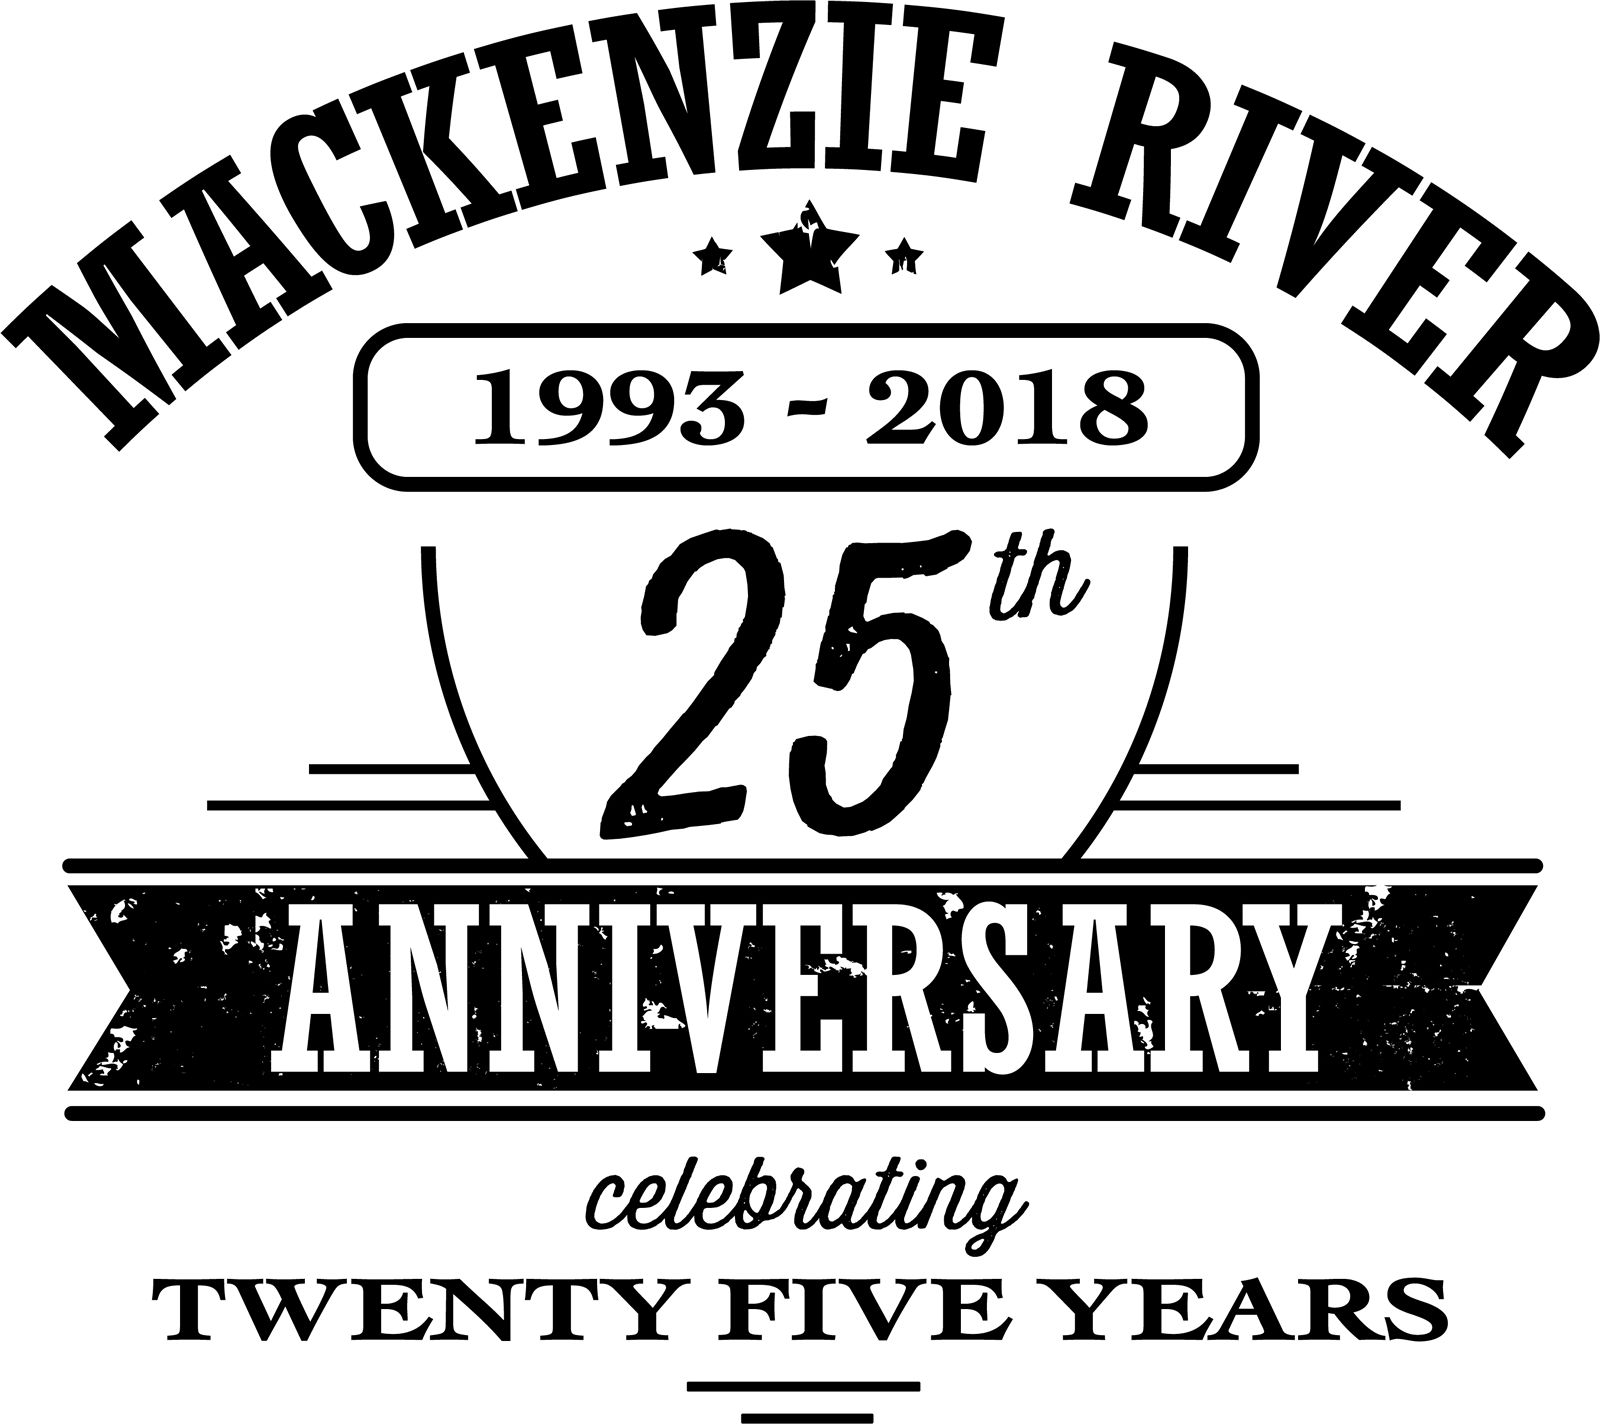 MacKenzie River Continues to Grow on Silver Anniversary